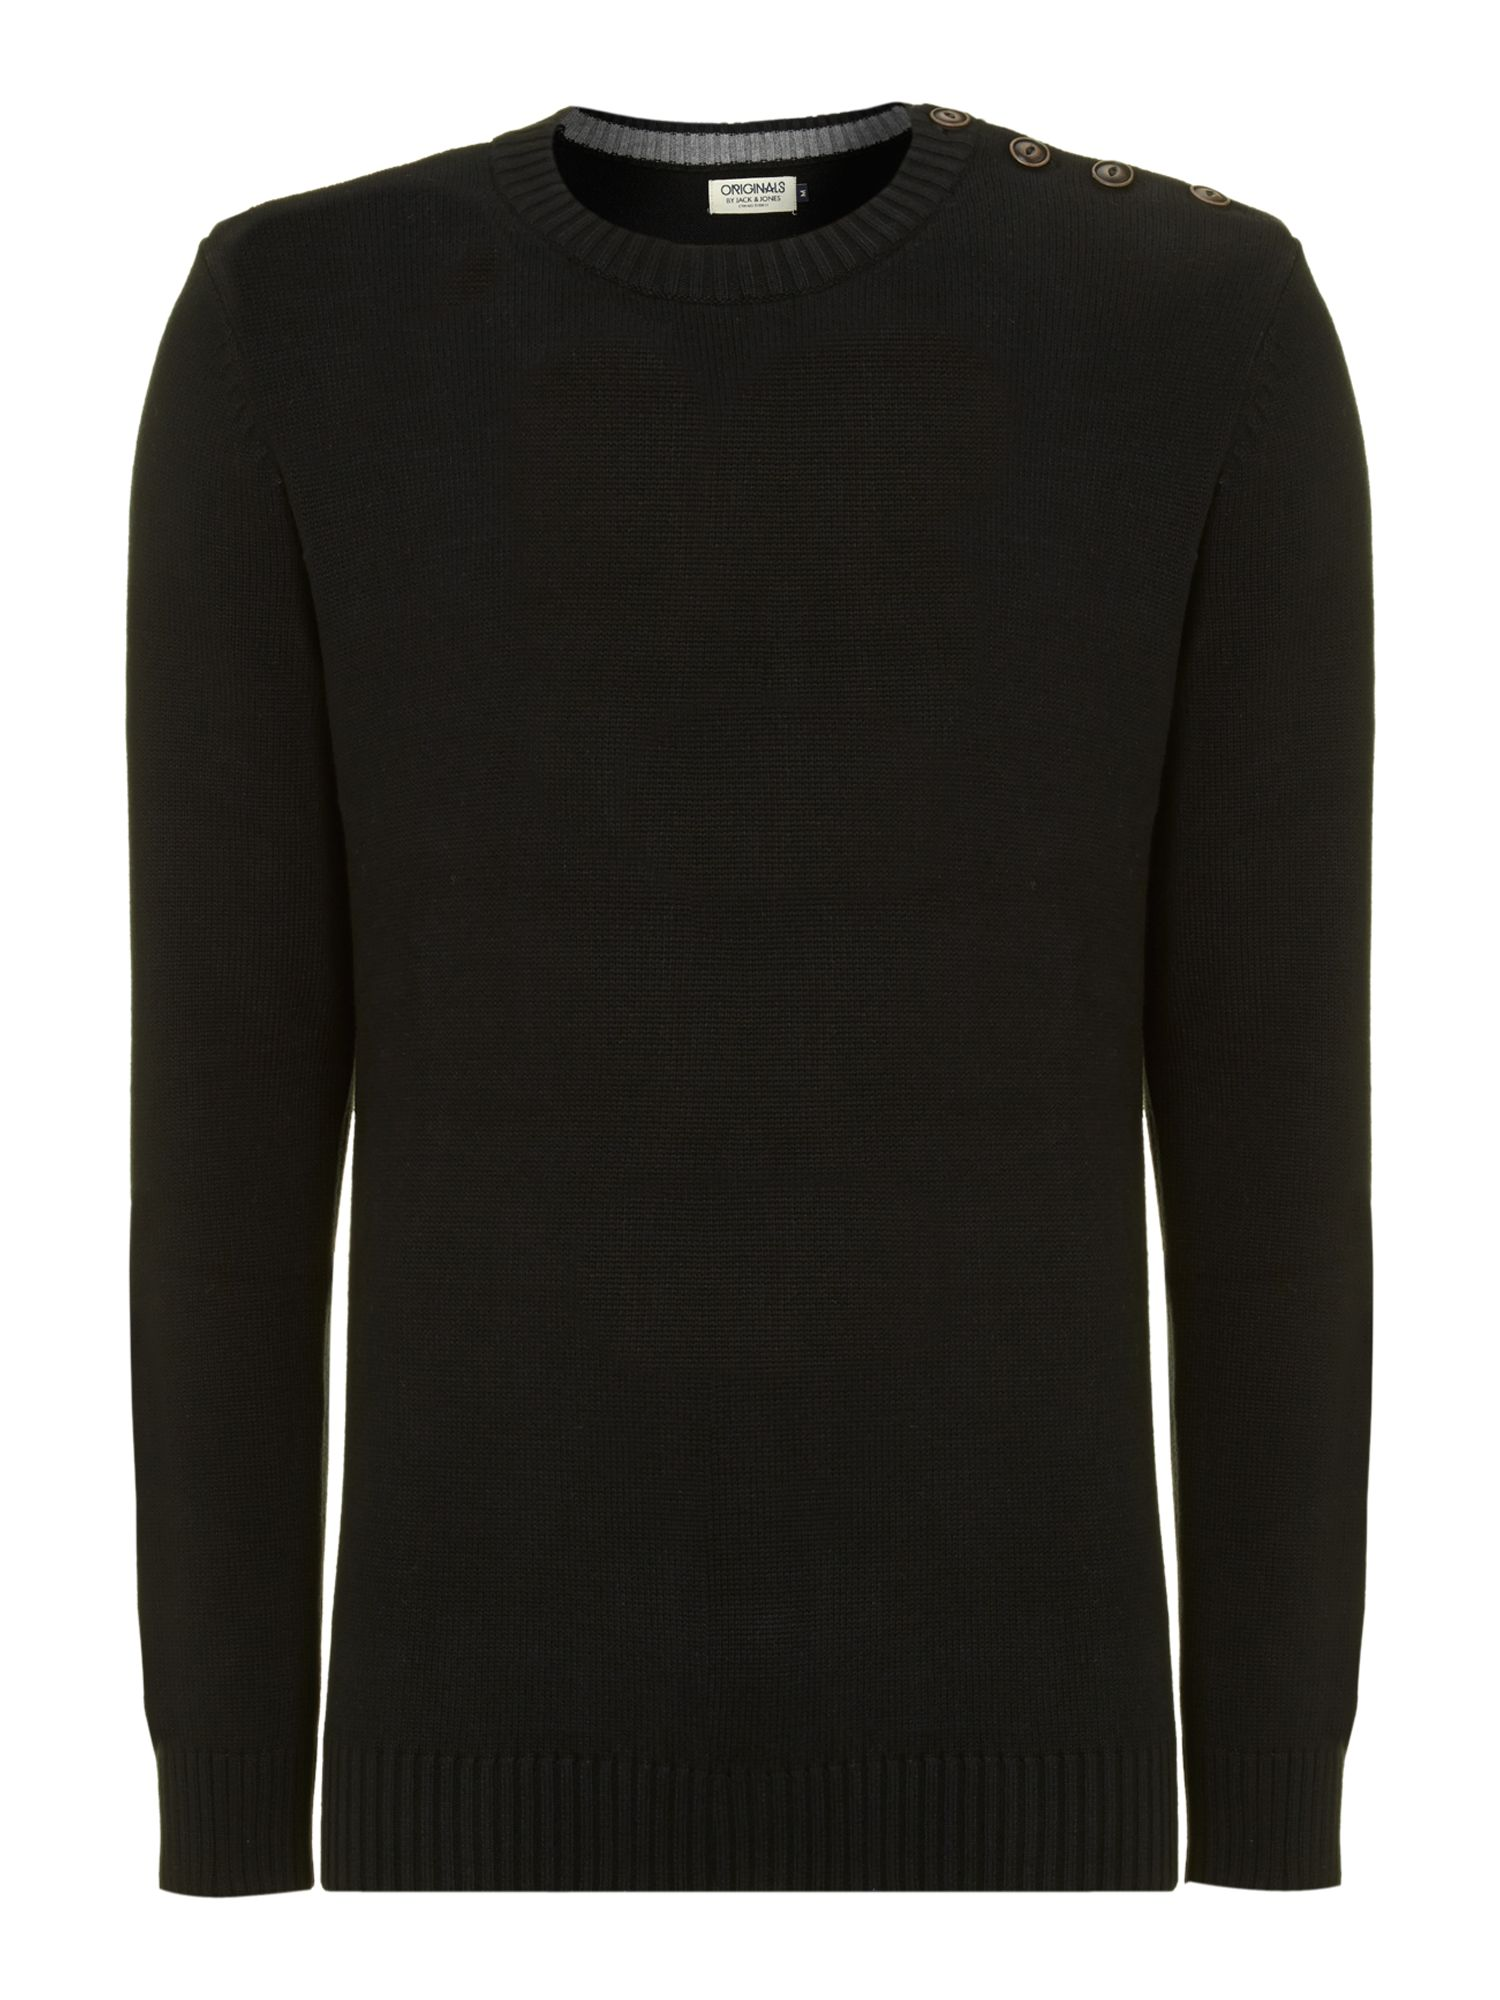 Crew neck long sleeved sweat